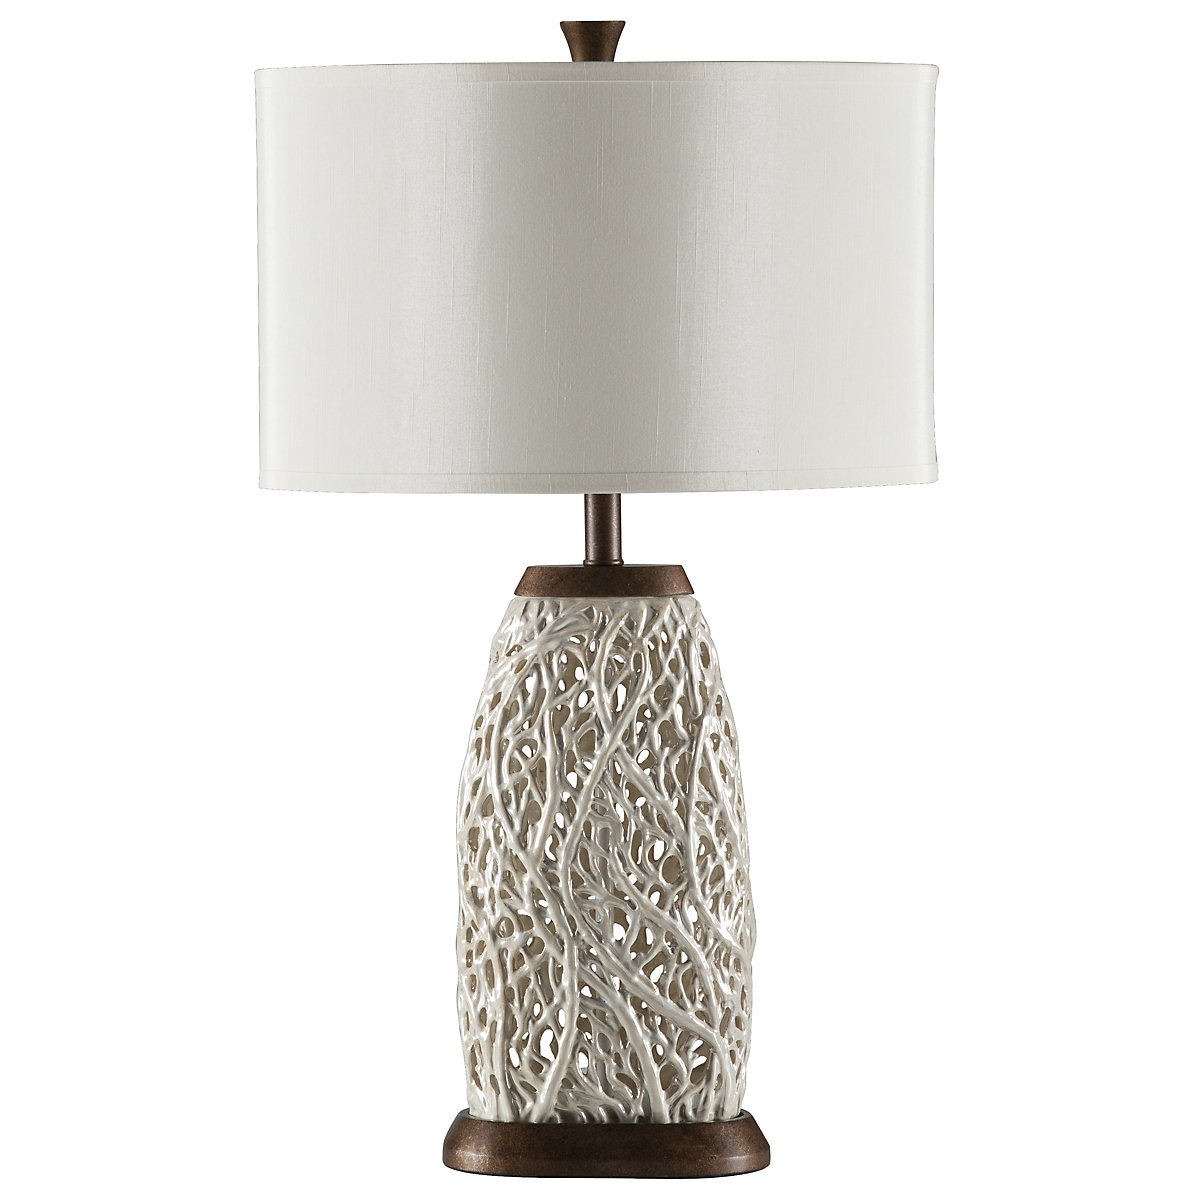 Seaspray White Table Lamp